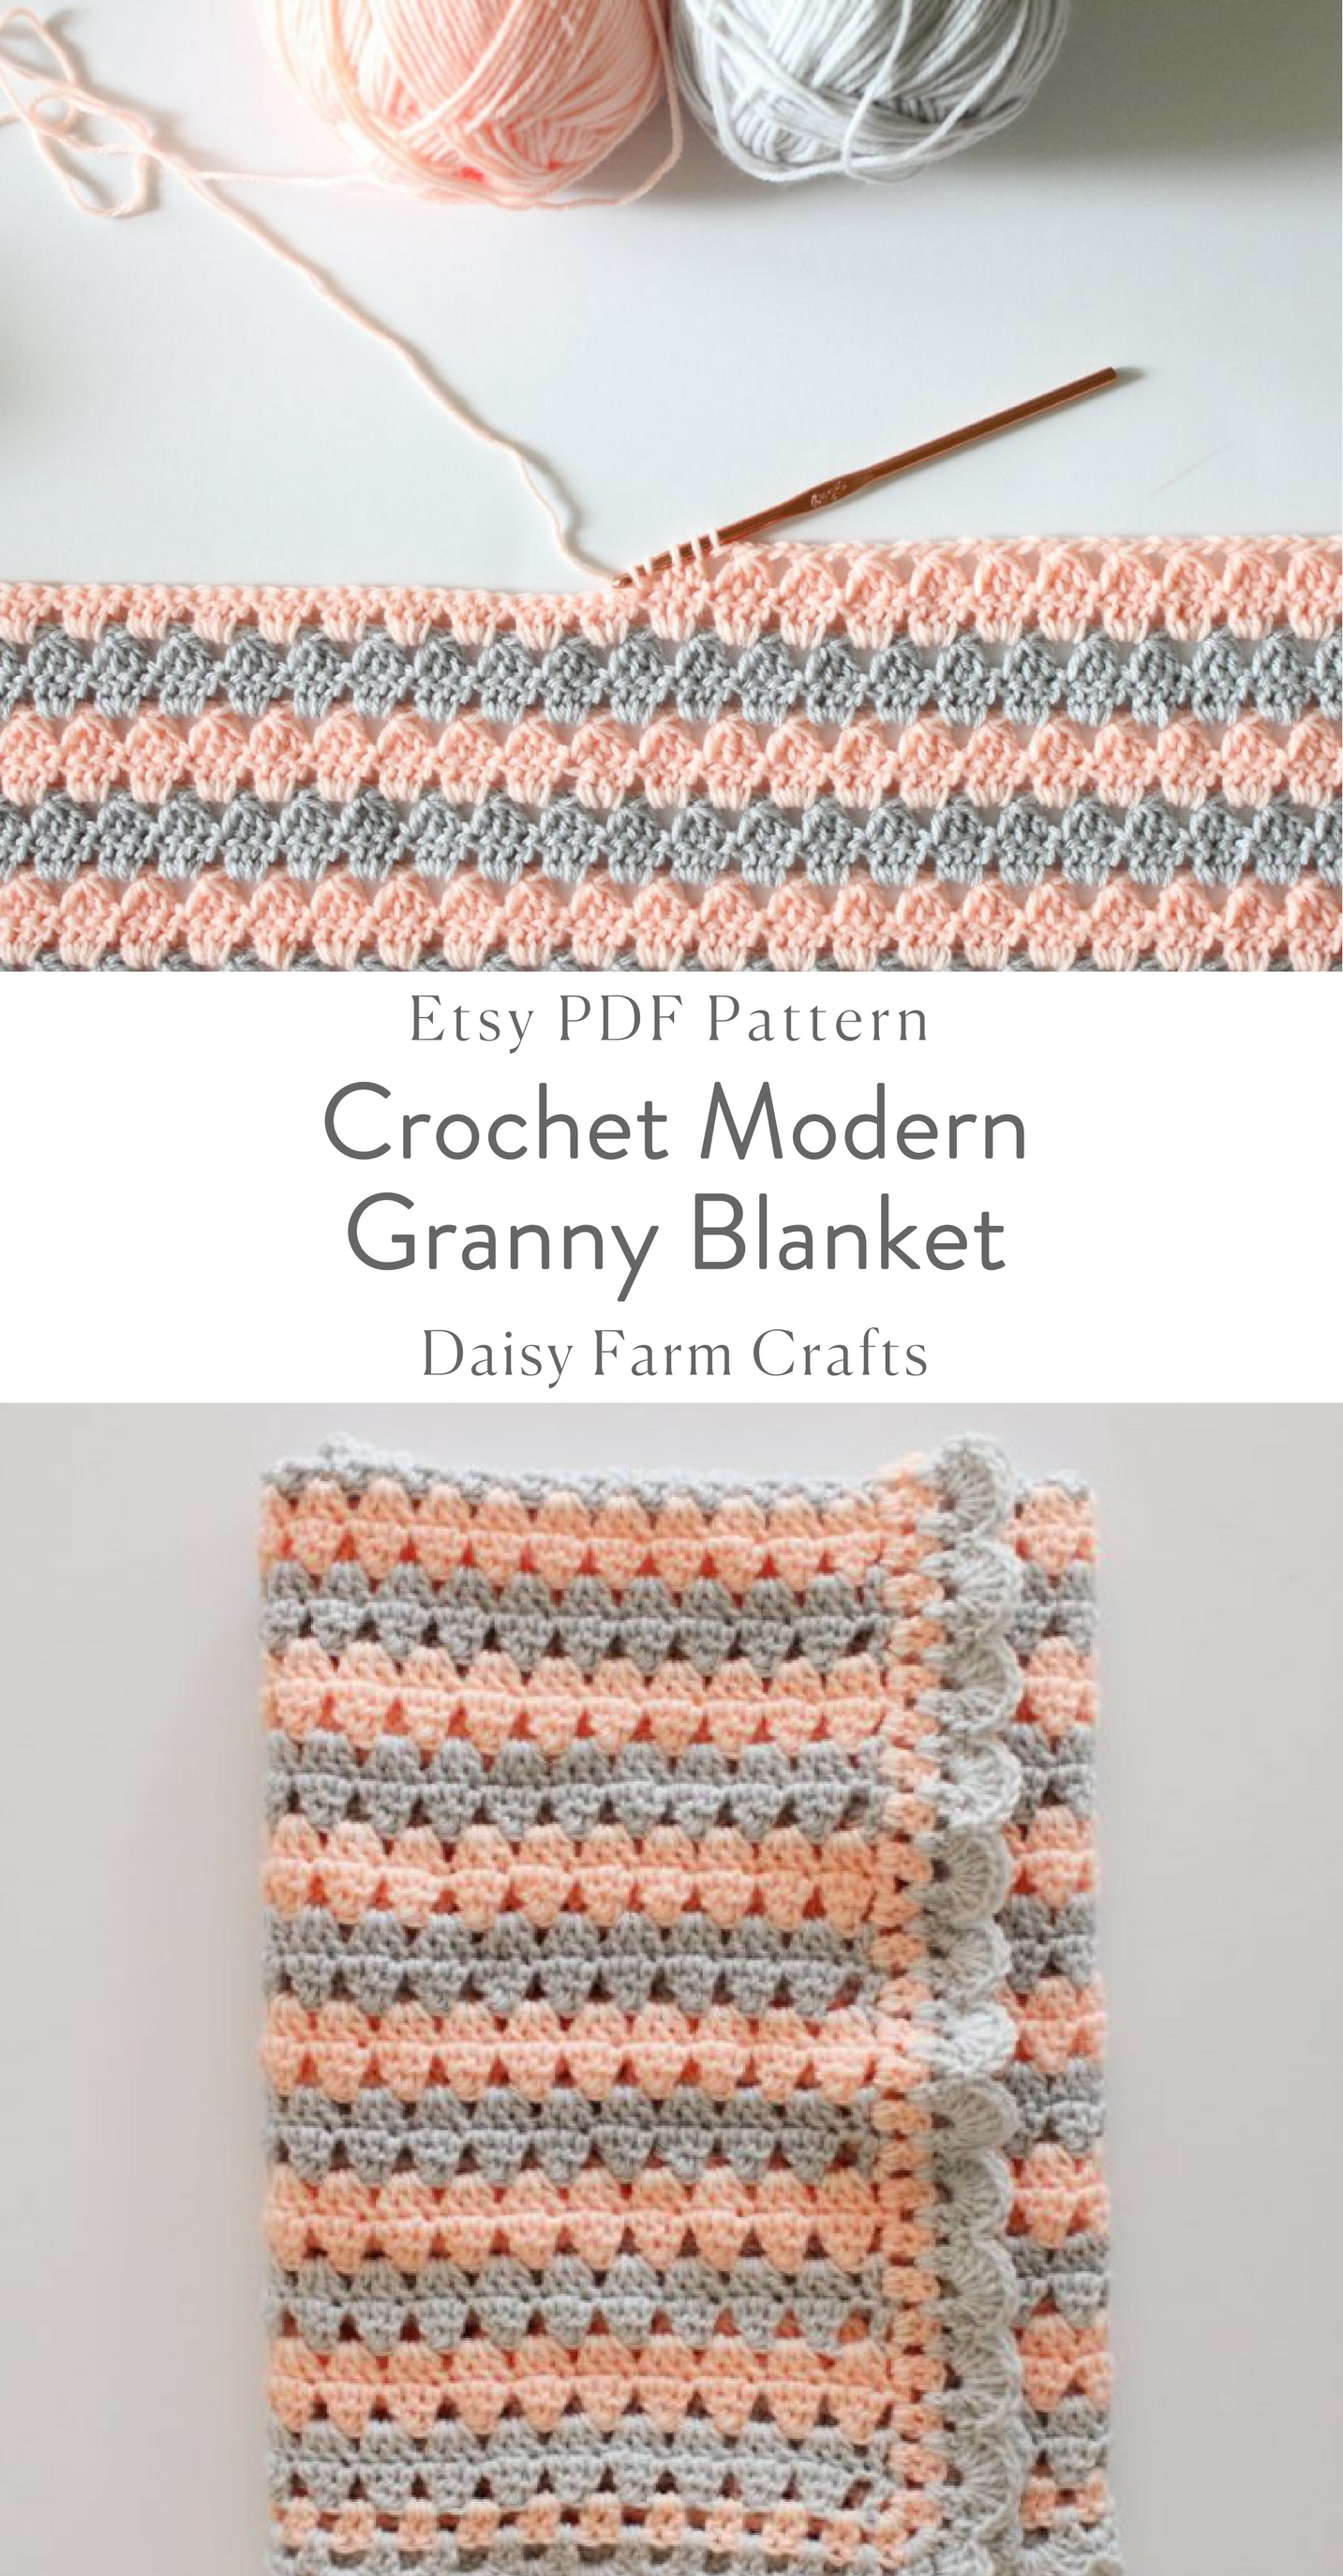 Crochet Modern Granny Blanket in Peach and Grey Pattern | naomi ...